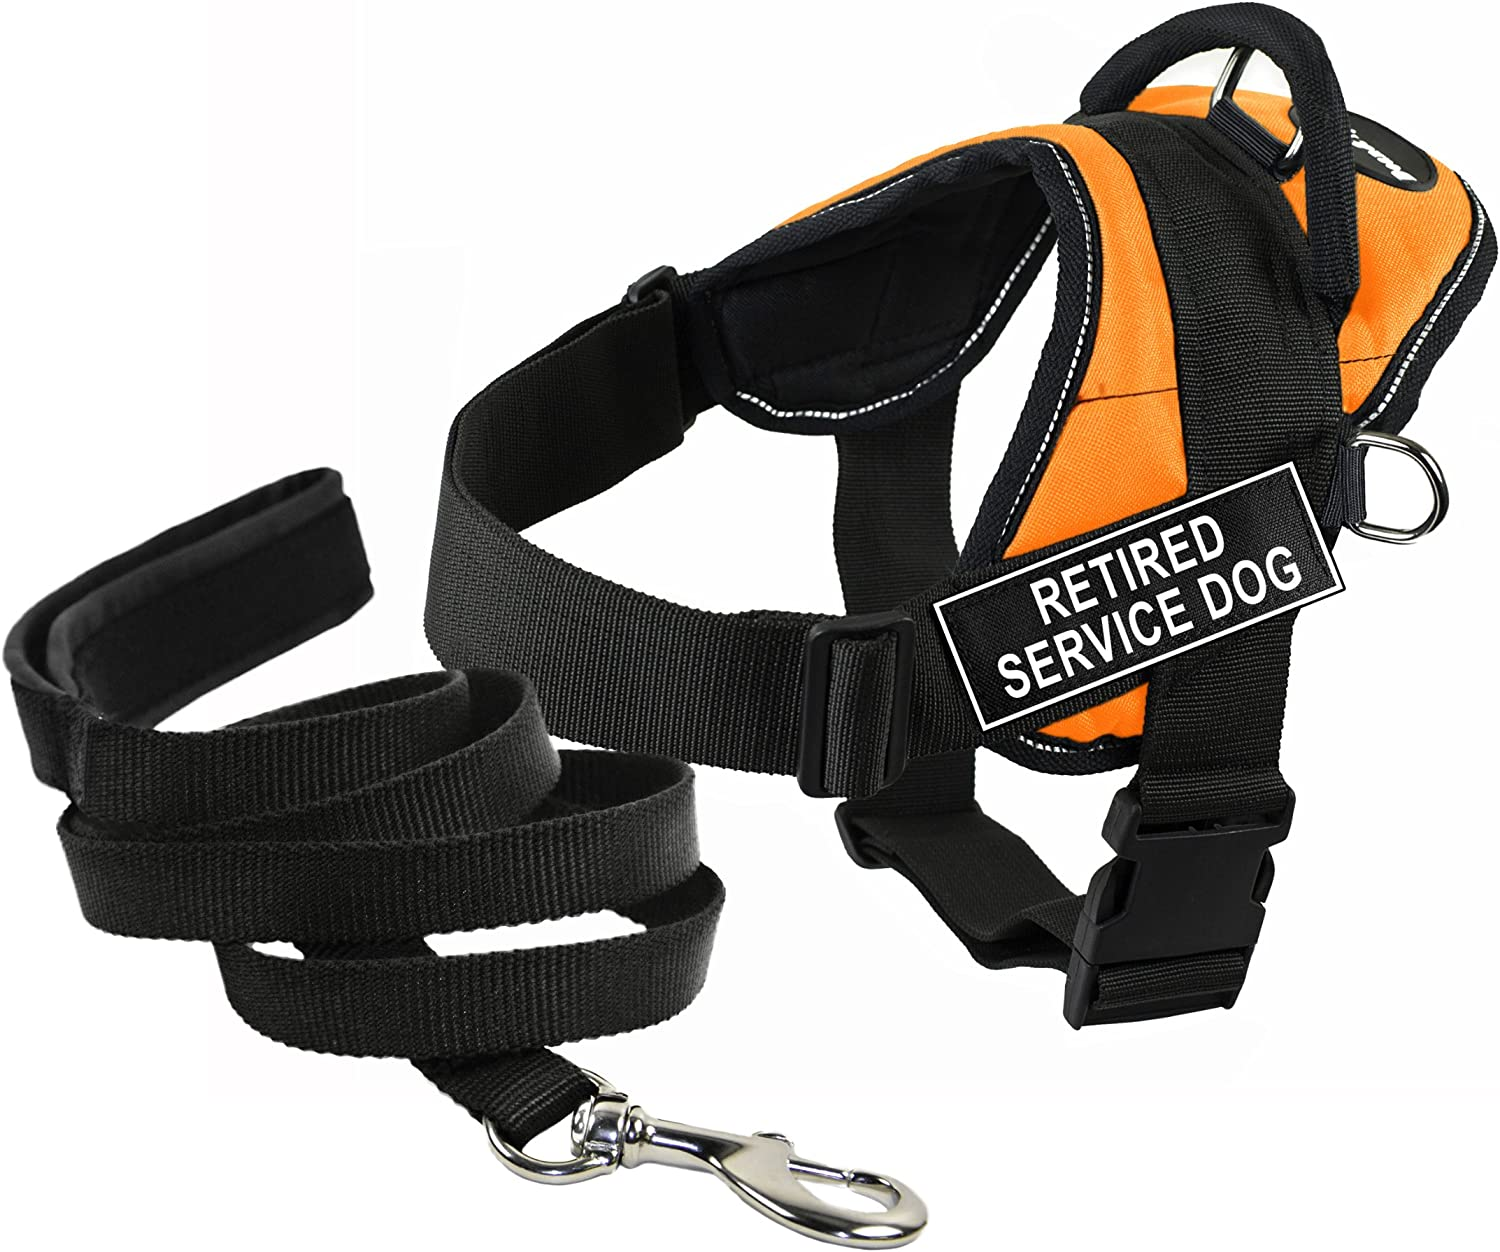 Dean & Tyler's DT Works orange RETIRED SERVICE DOG Harness with Chest Padding, XSmall, and Black 6 ft Padded Puppy Leash.